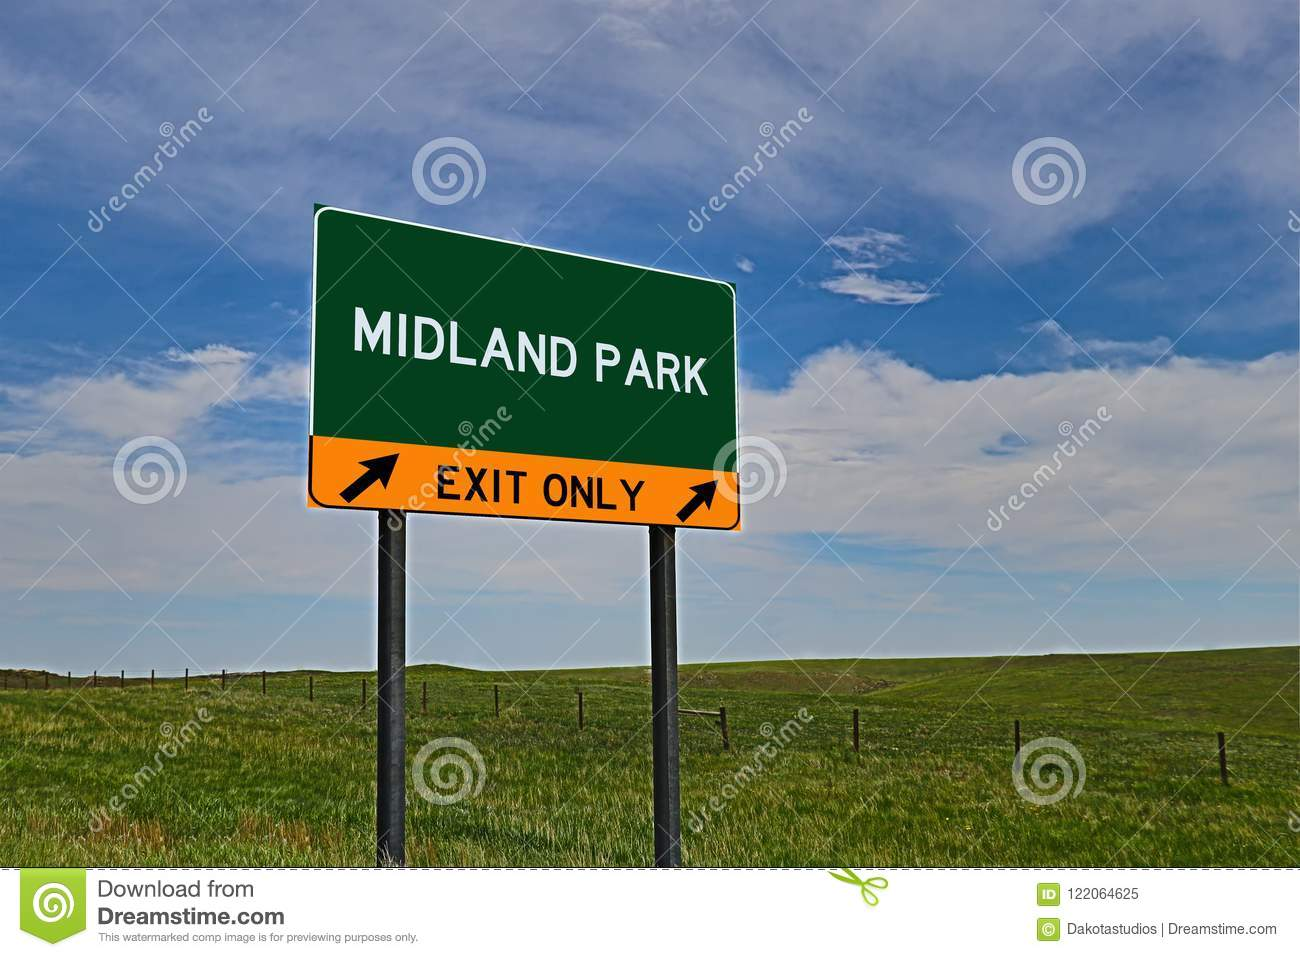 US Highway Exit Sign for Midland Park